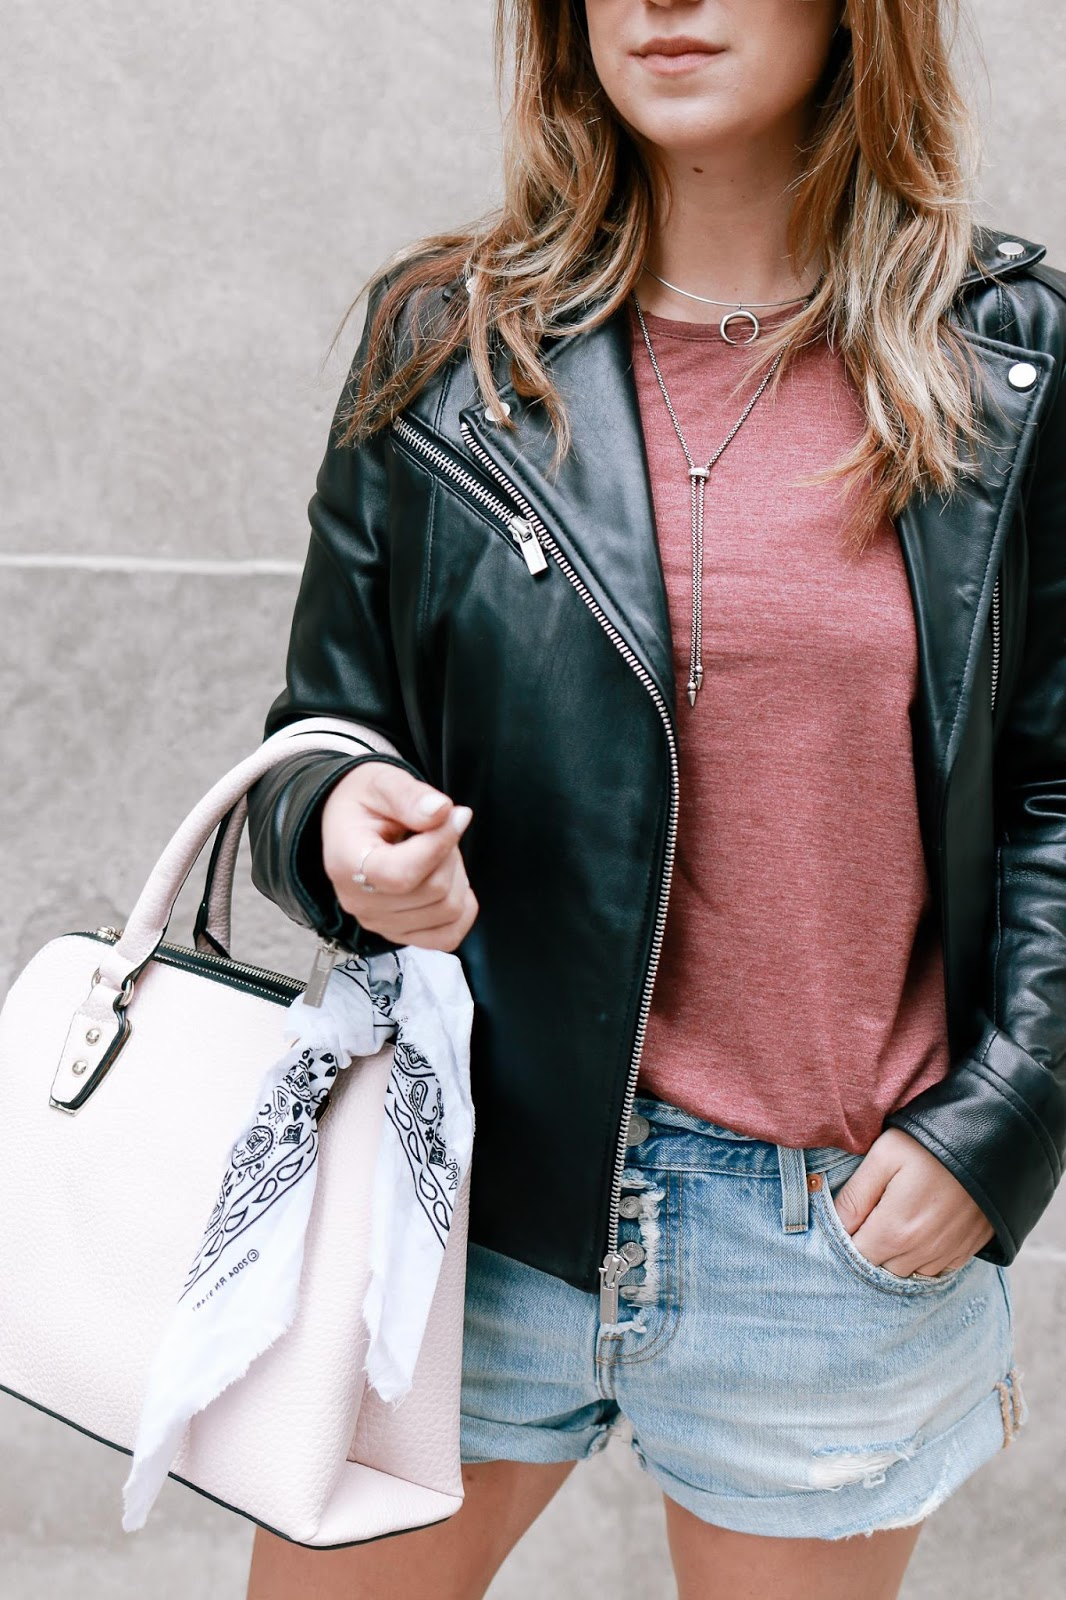 Picture of blogger, The Fashionably Broke, wearing the WILSONS LEATHER POLISHED CLASSIC LEATHER CYCLE JACKET.